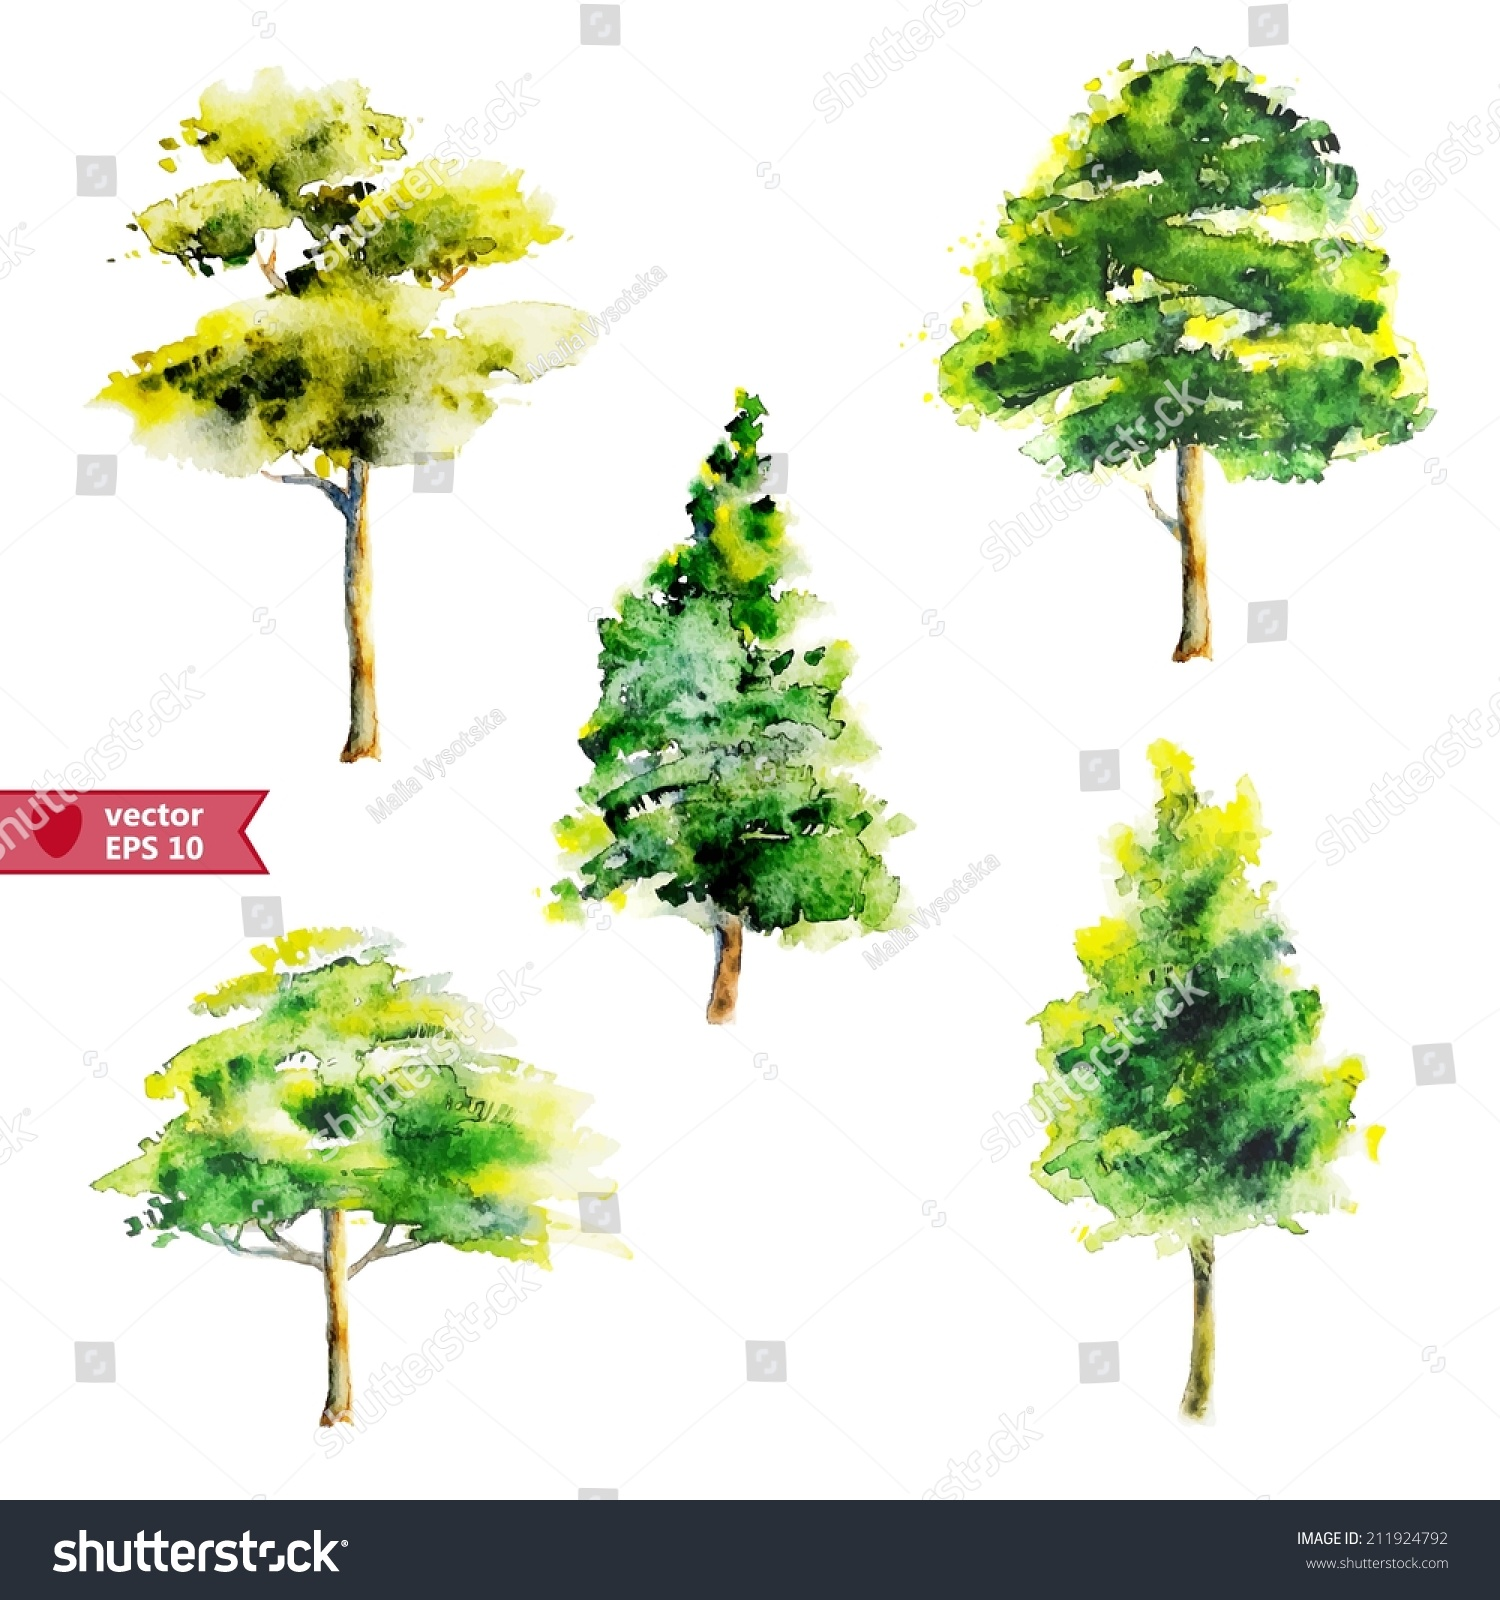 Hand Drawing By Water Color Vector Stock Vector 211924792 - Shutterstock